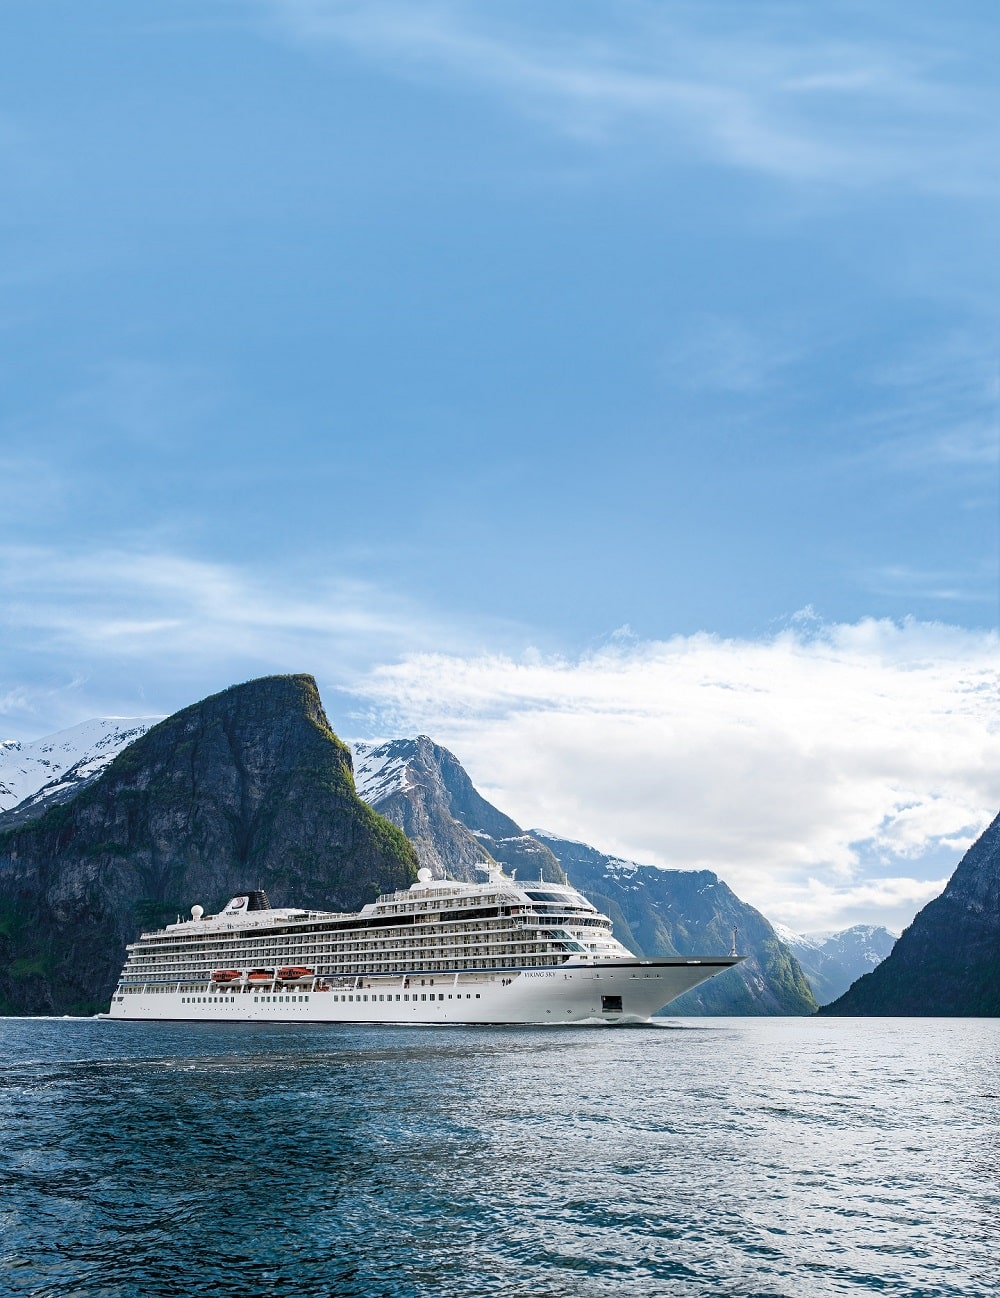 Viking Cruises Viking Star 5 near the fjords of Flam, Norway, planned by Southern Travel Agency Augusta, GA